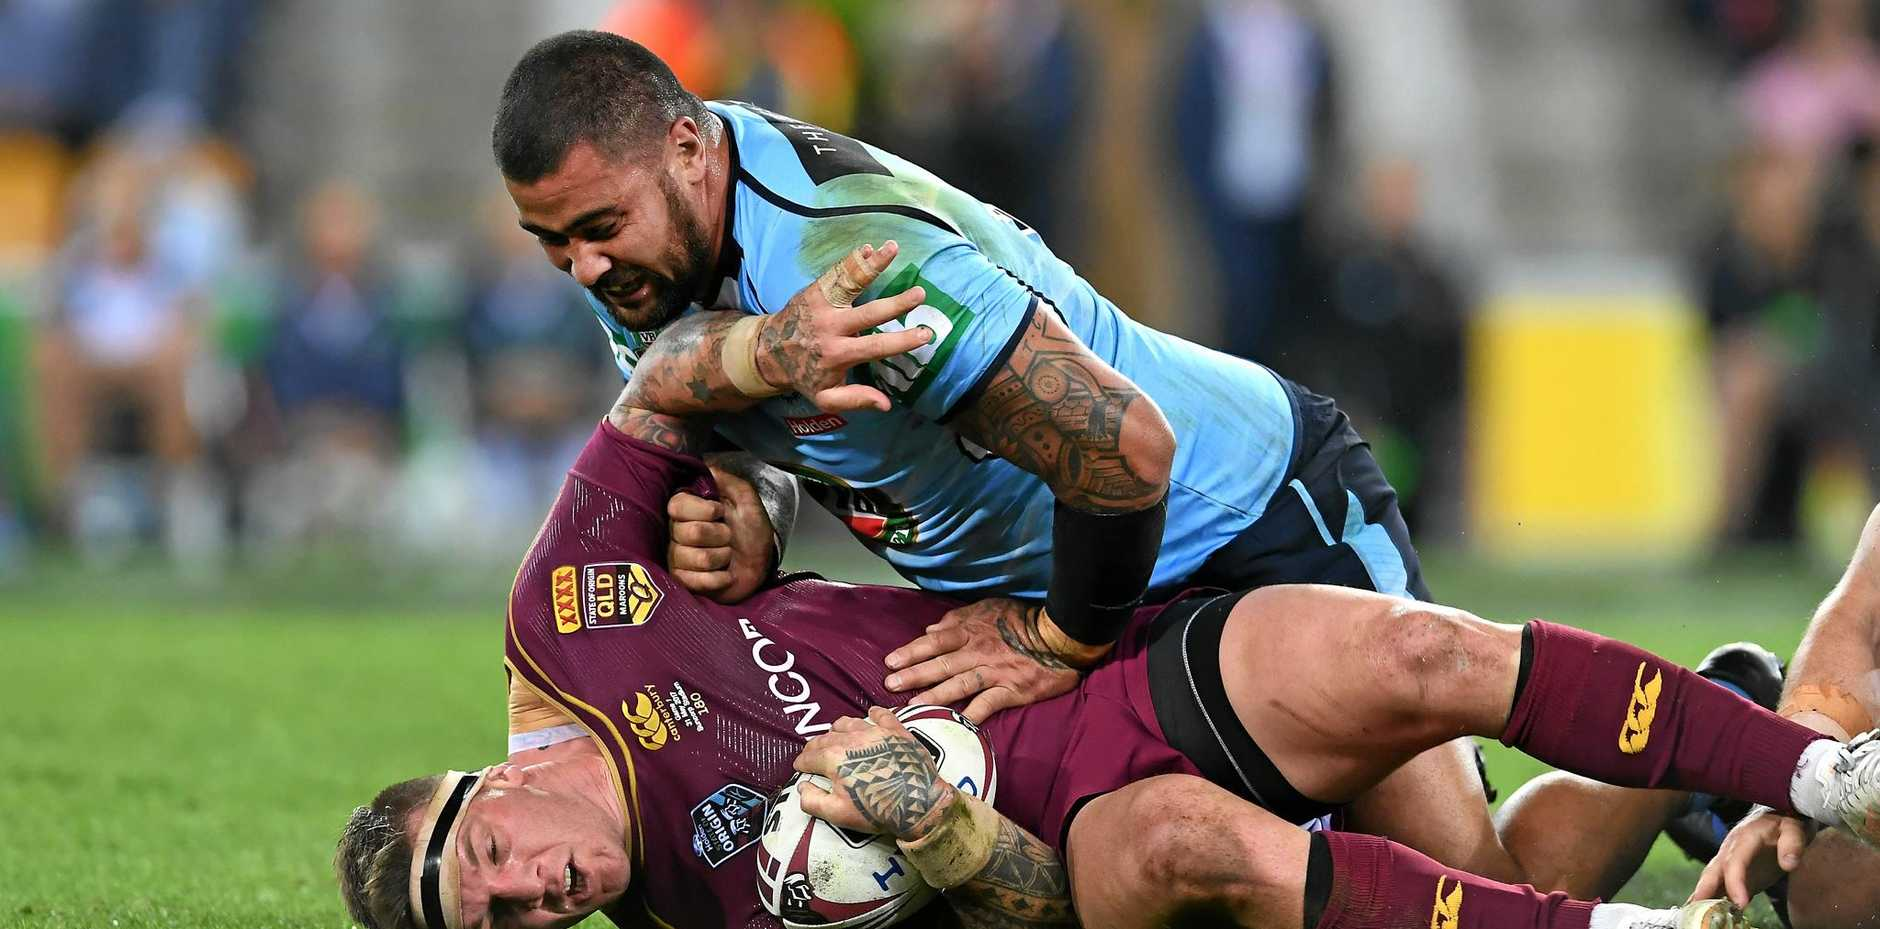 Andrew Fifita of the NSW Blues (top) tackles Josh McGuire of the Queensland Maroons during game one of the State of Origin series.